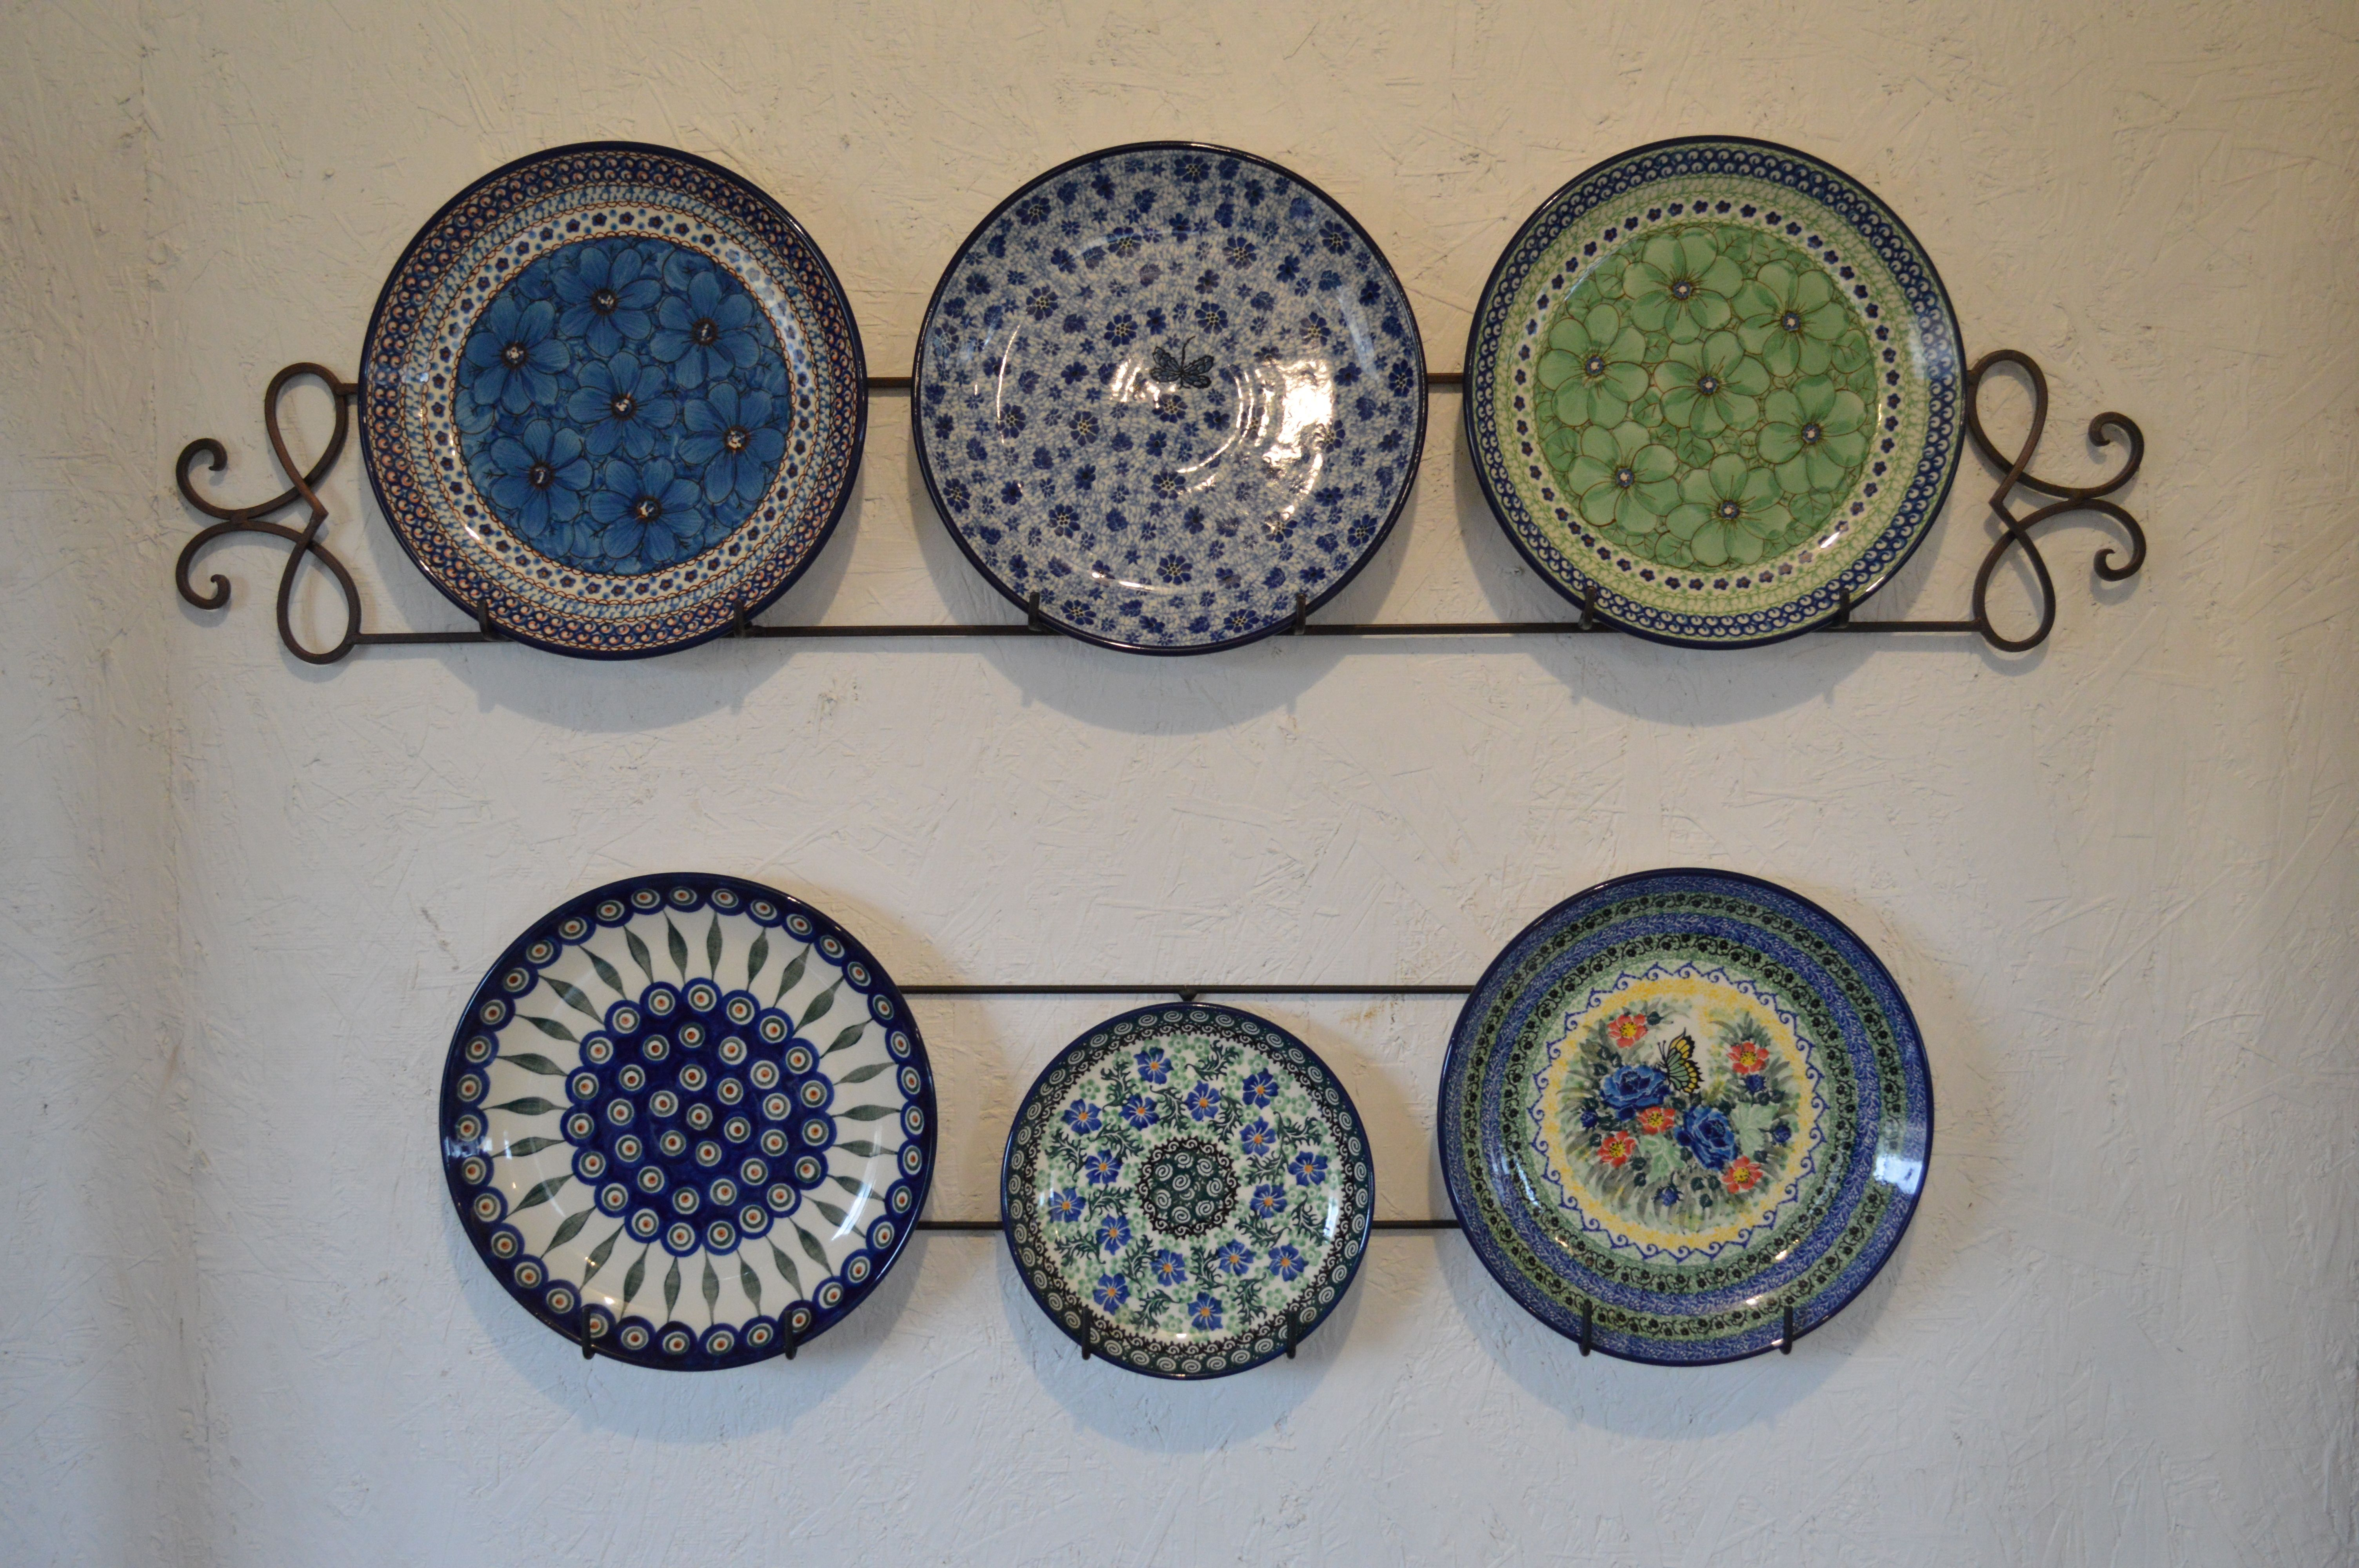 Plate Racks Wonderful Way To Display Polish Pottery Plates In Your Kitchen Plates On Wall Flower Room Decor Polish Pottery